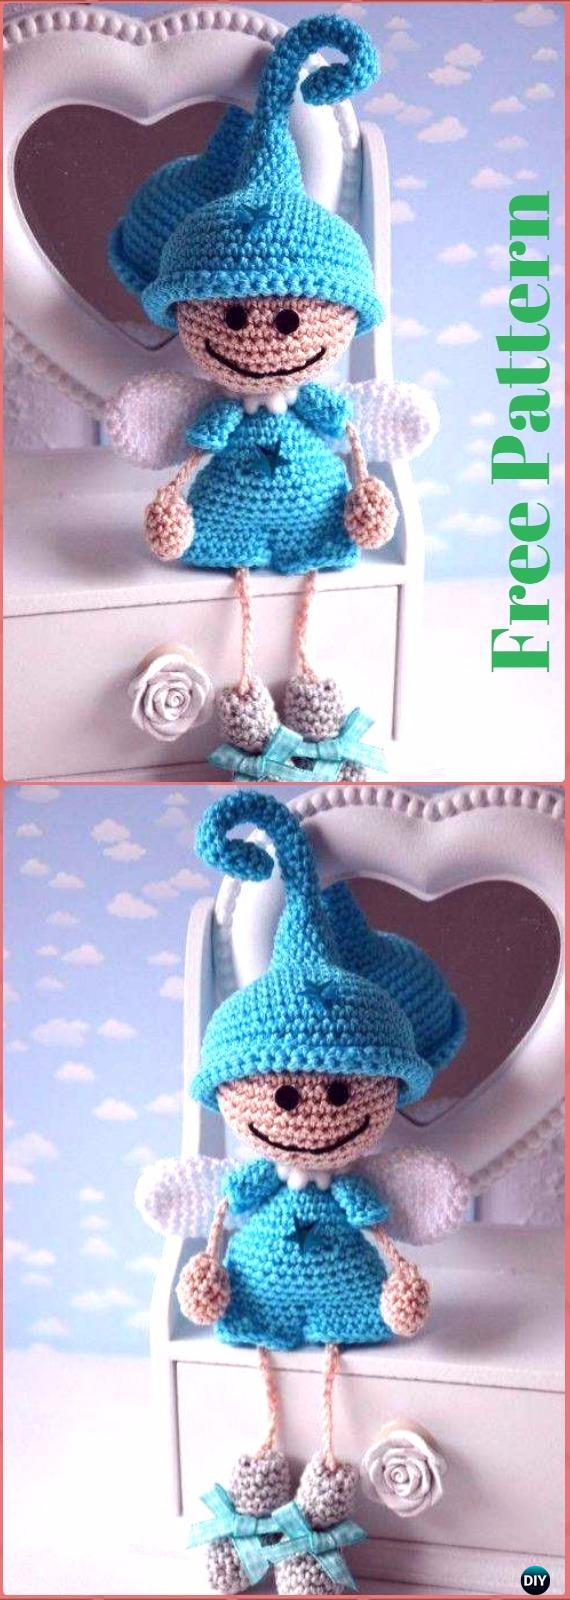 Crochet Guardian Angels Free Pattern - Crochet Angel Free Patterns